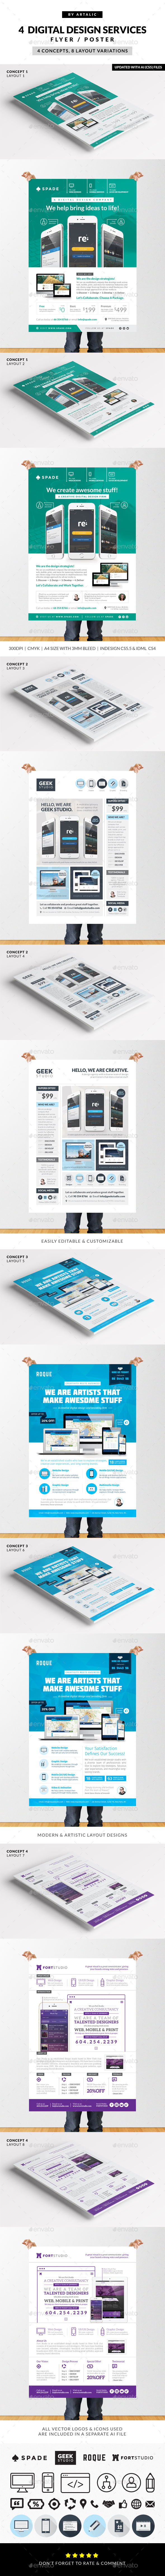 4 Design (Web/App/Graphic) Services Flyer/Poster - Corporate Flyers